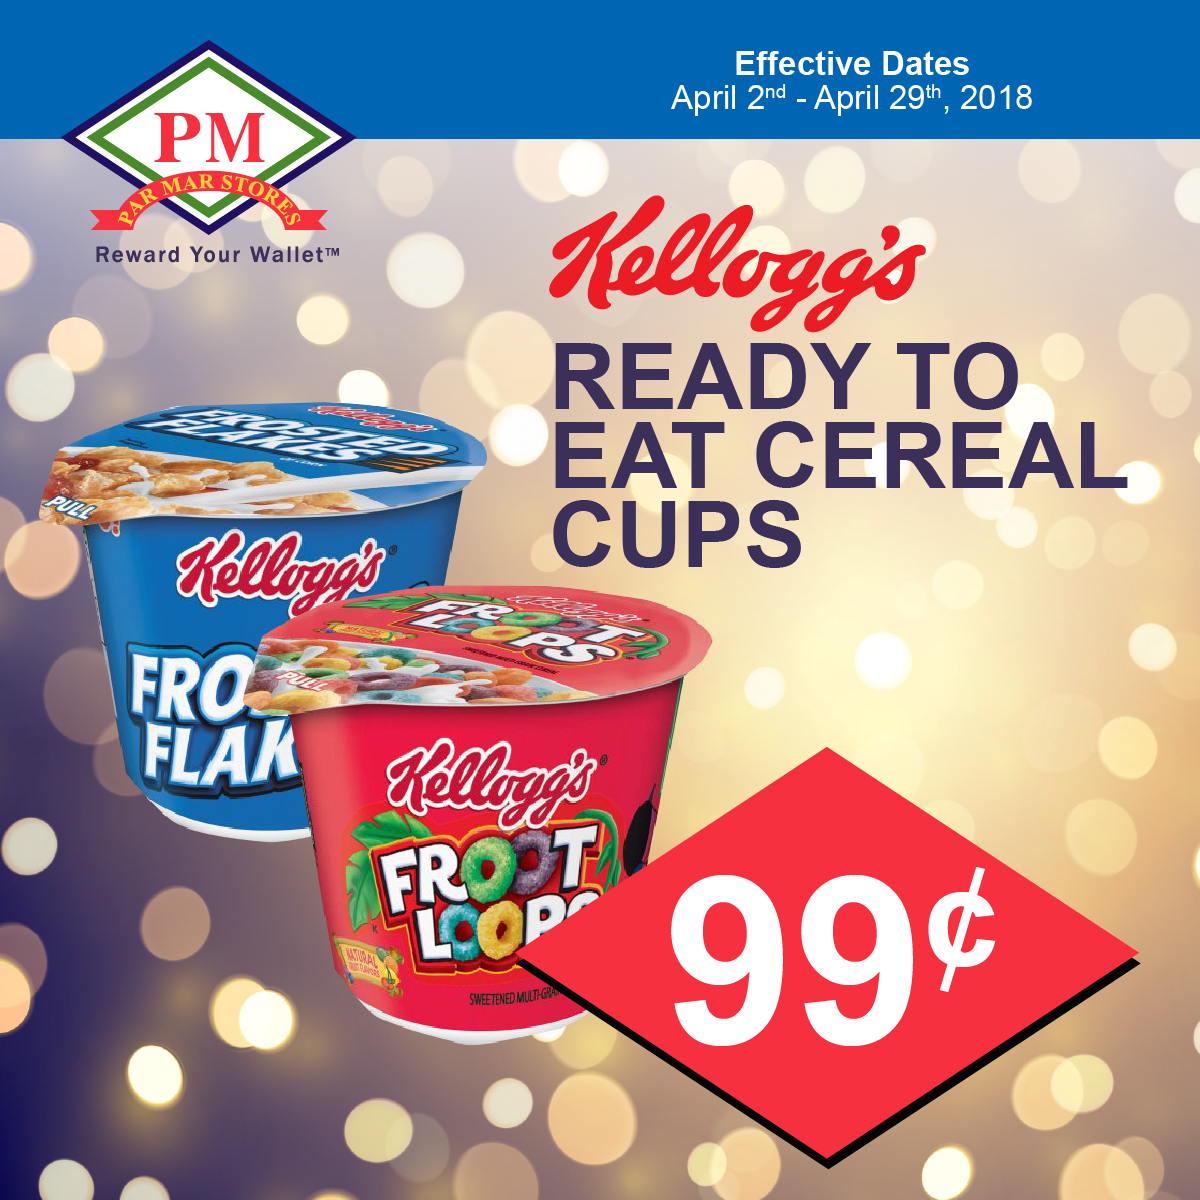 kellogs cereal cup